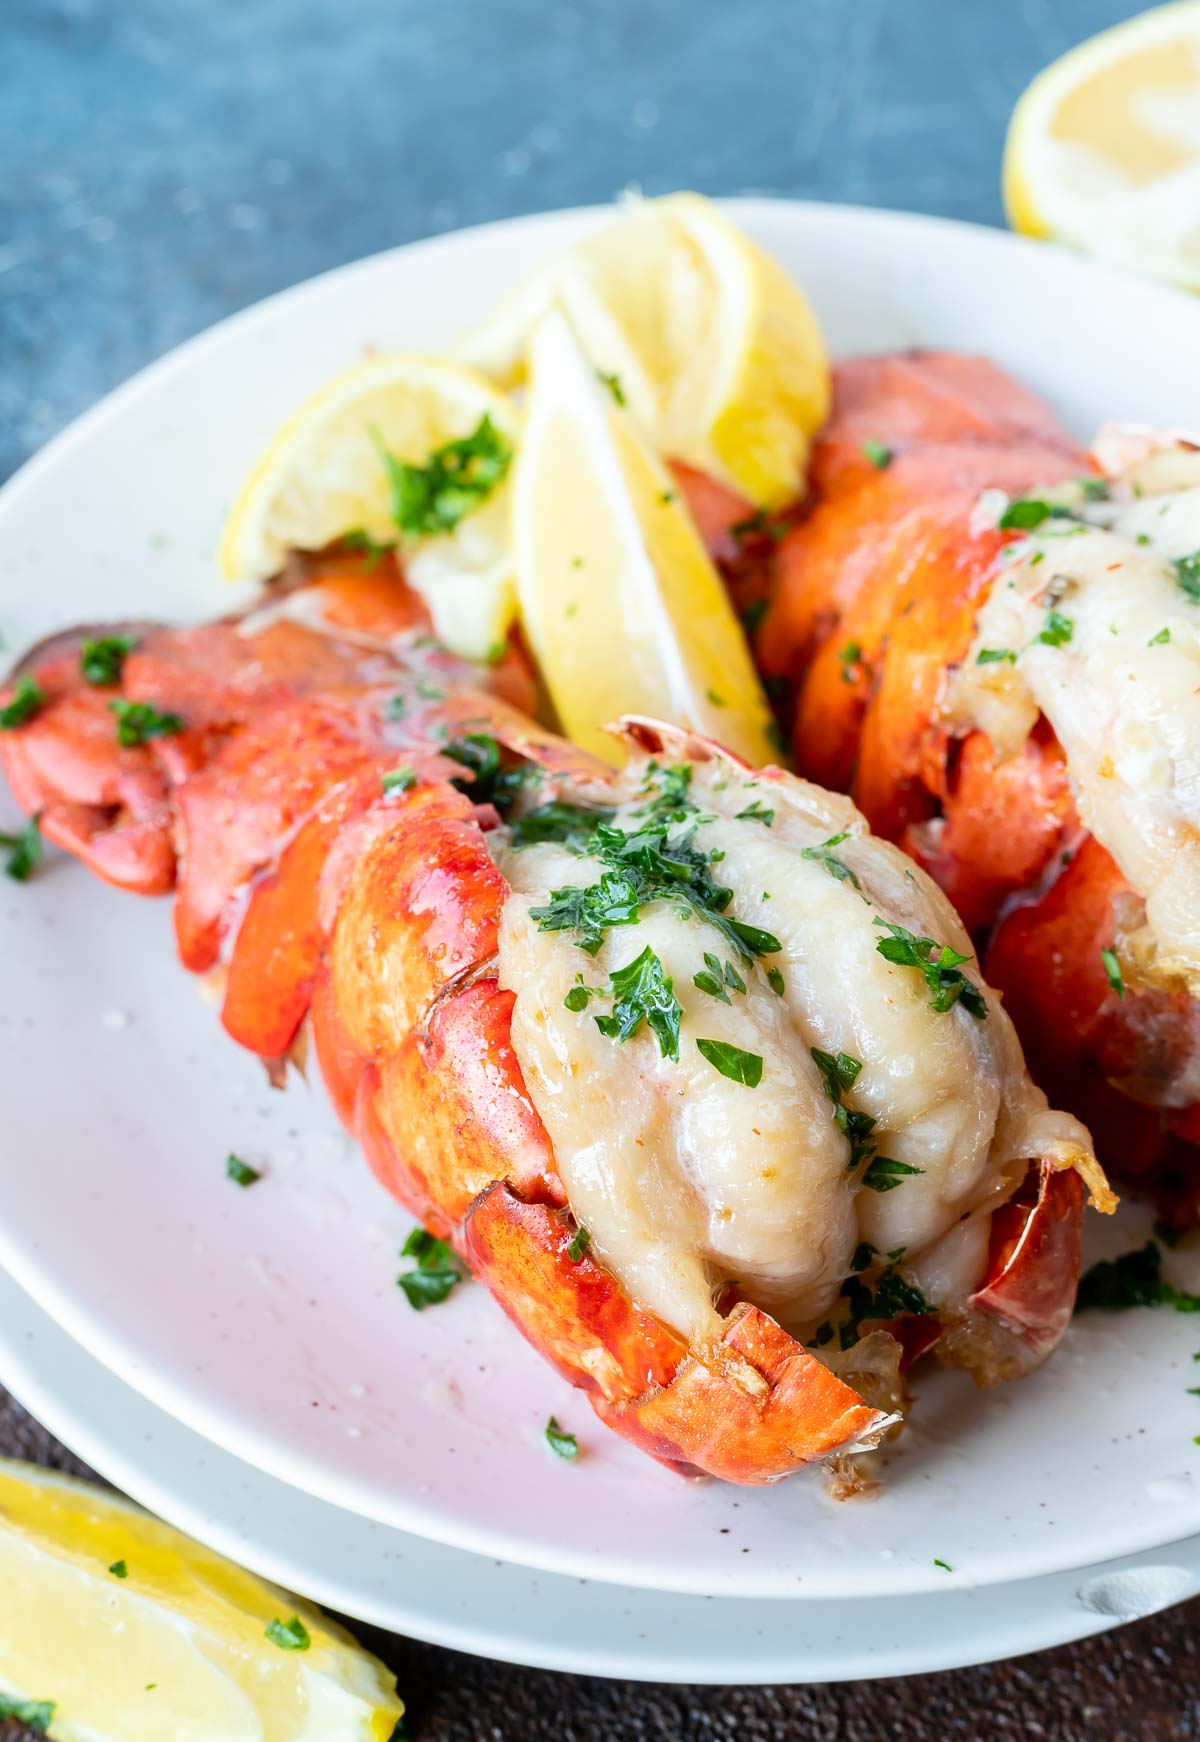 cooked lobster tails and lemon wedges served on white plate